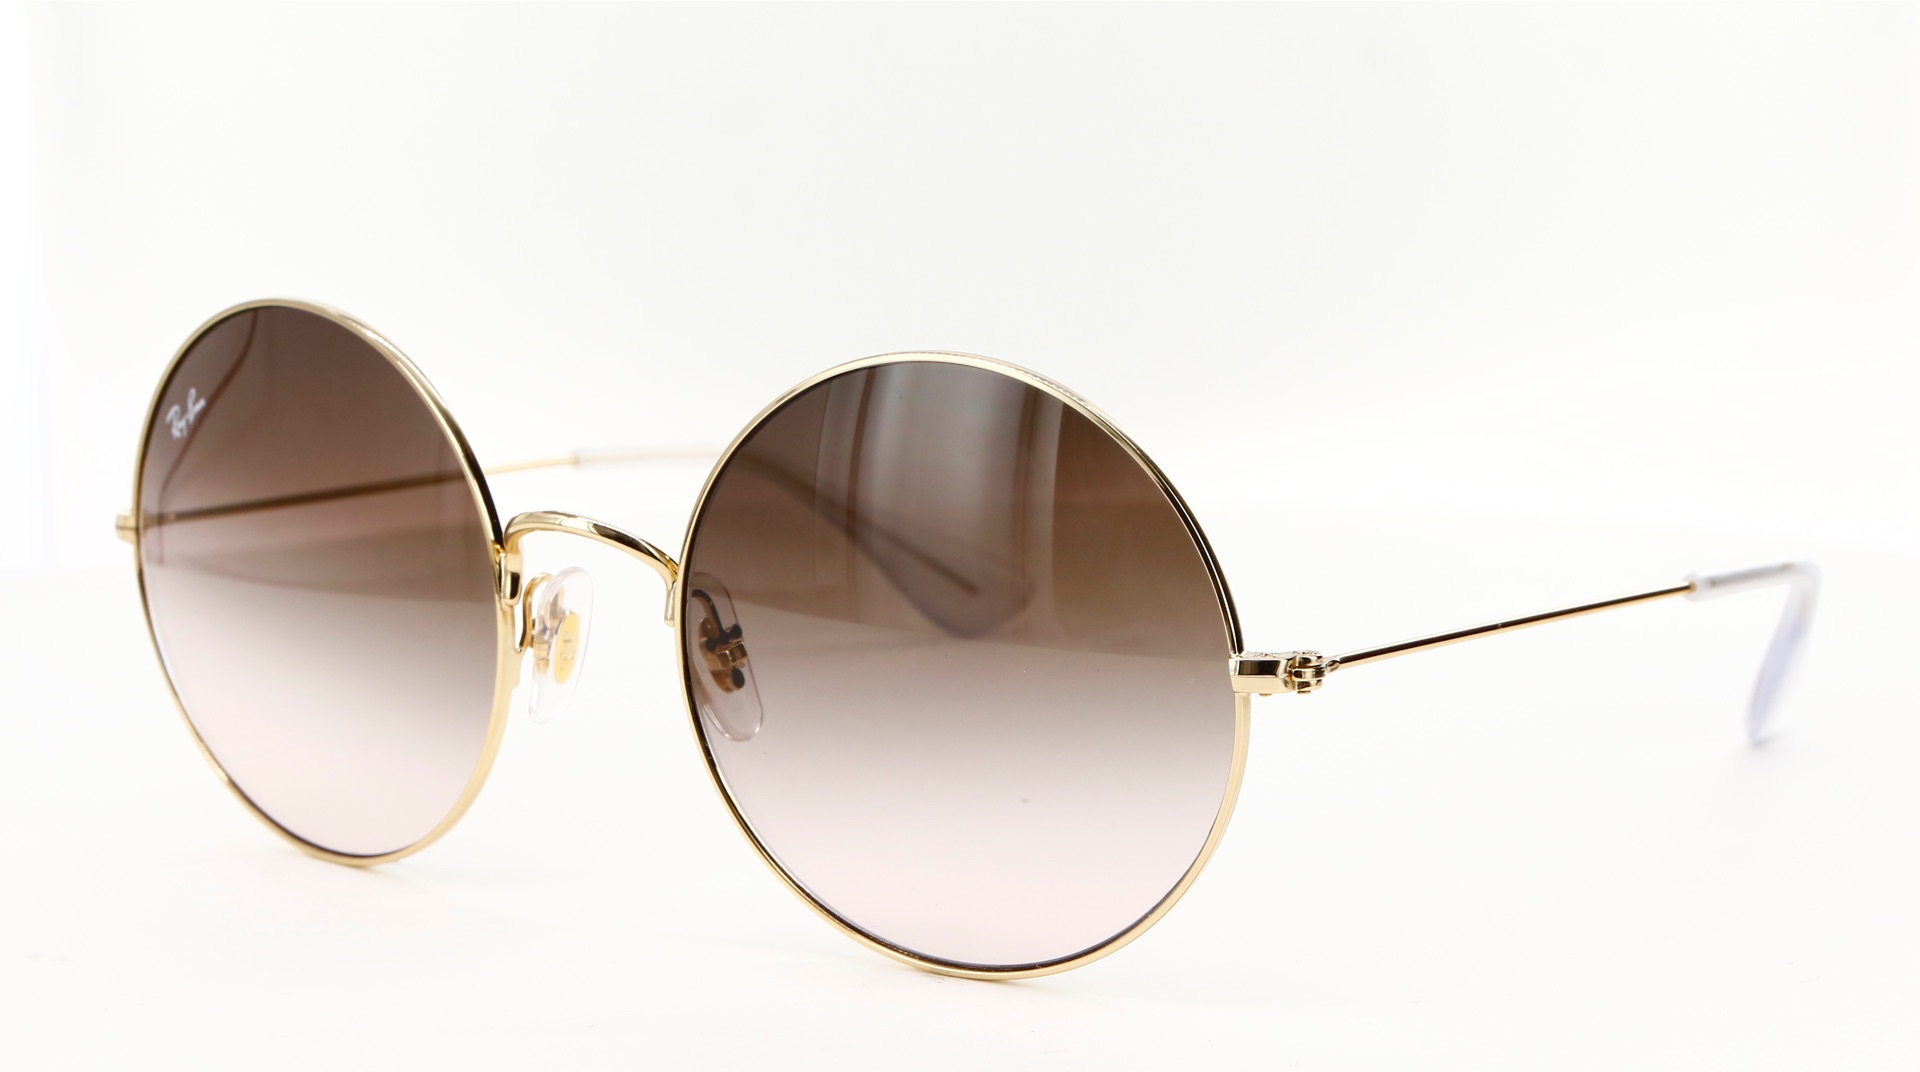 Ray-Ban - ref: 79074